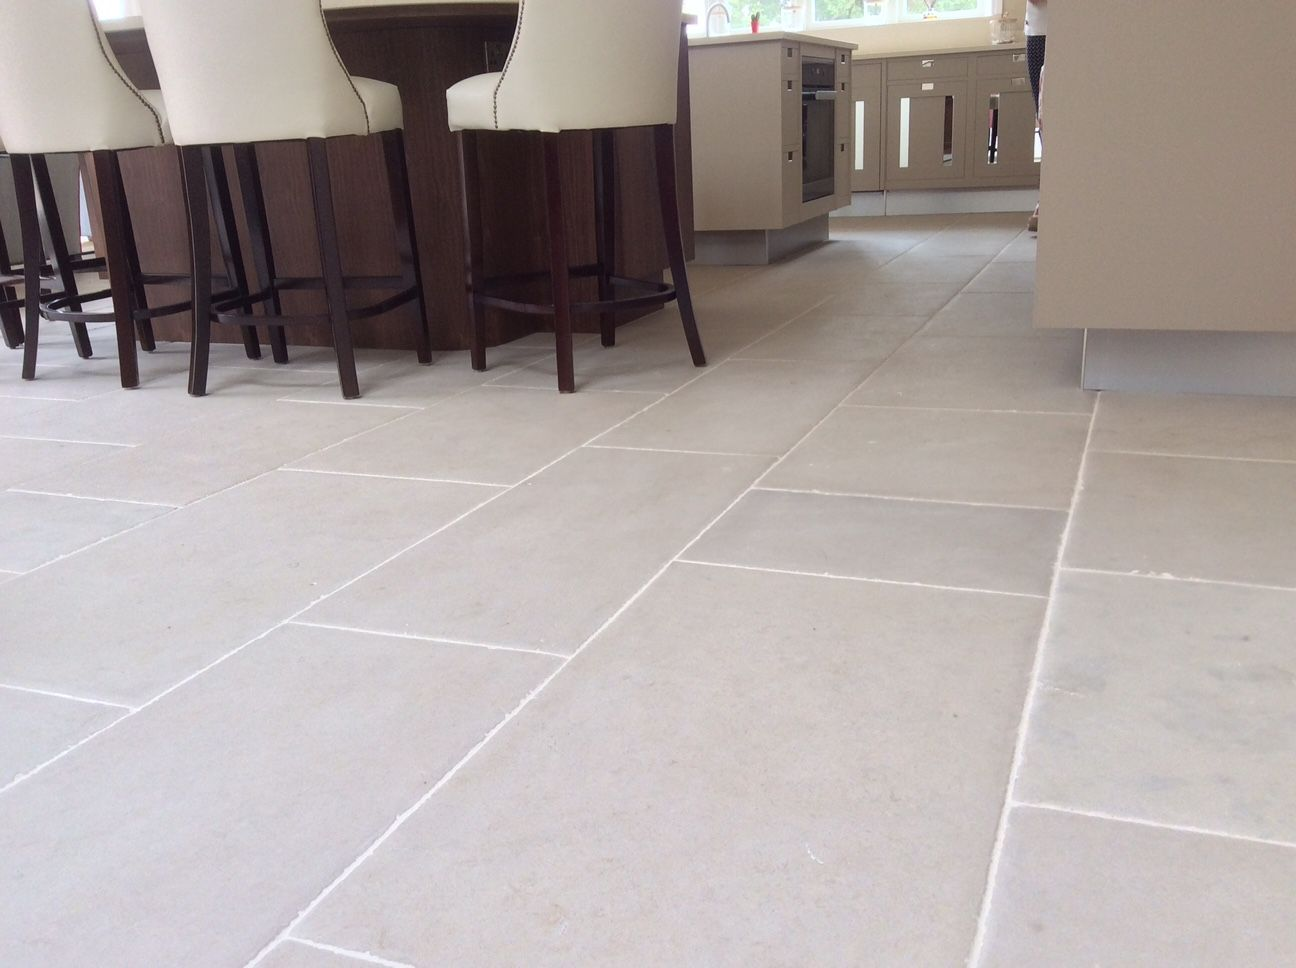 Luberon stone flooring hand distressed antiqued limestone beige luberon stone flooring hand distressed antiqued limestone beige brown in tone with a light hint of grey an authentic stone floor tile which will dailygadgetfo Image collections